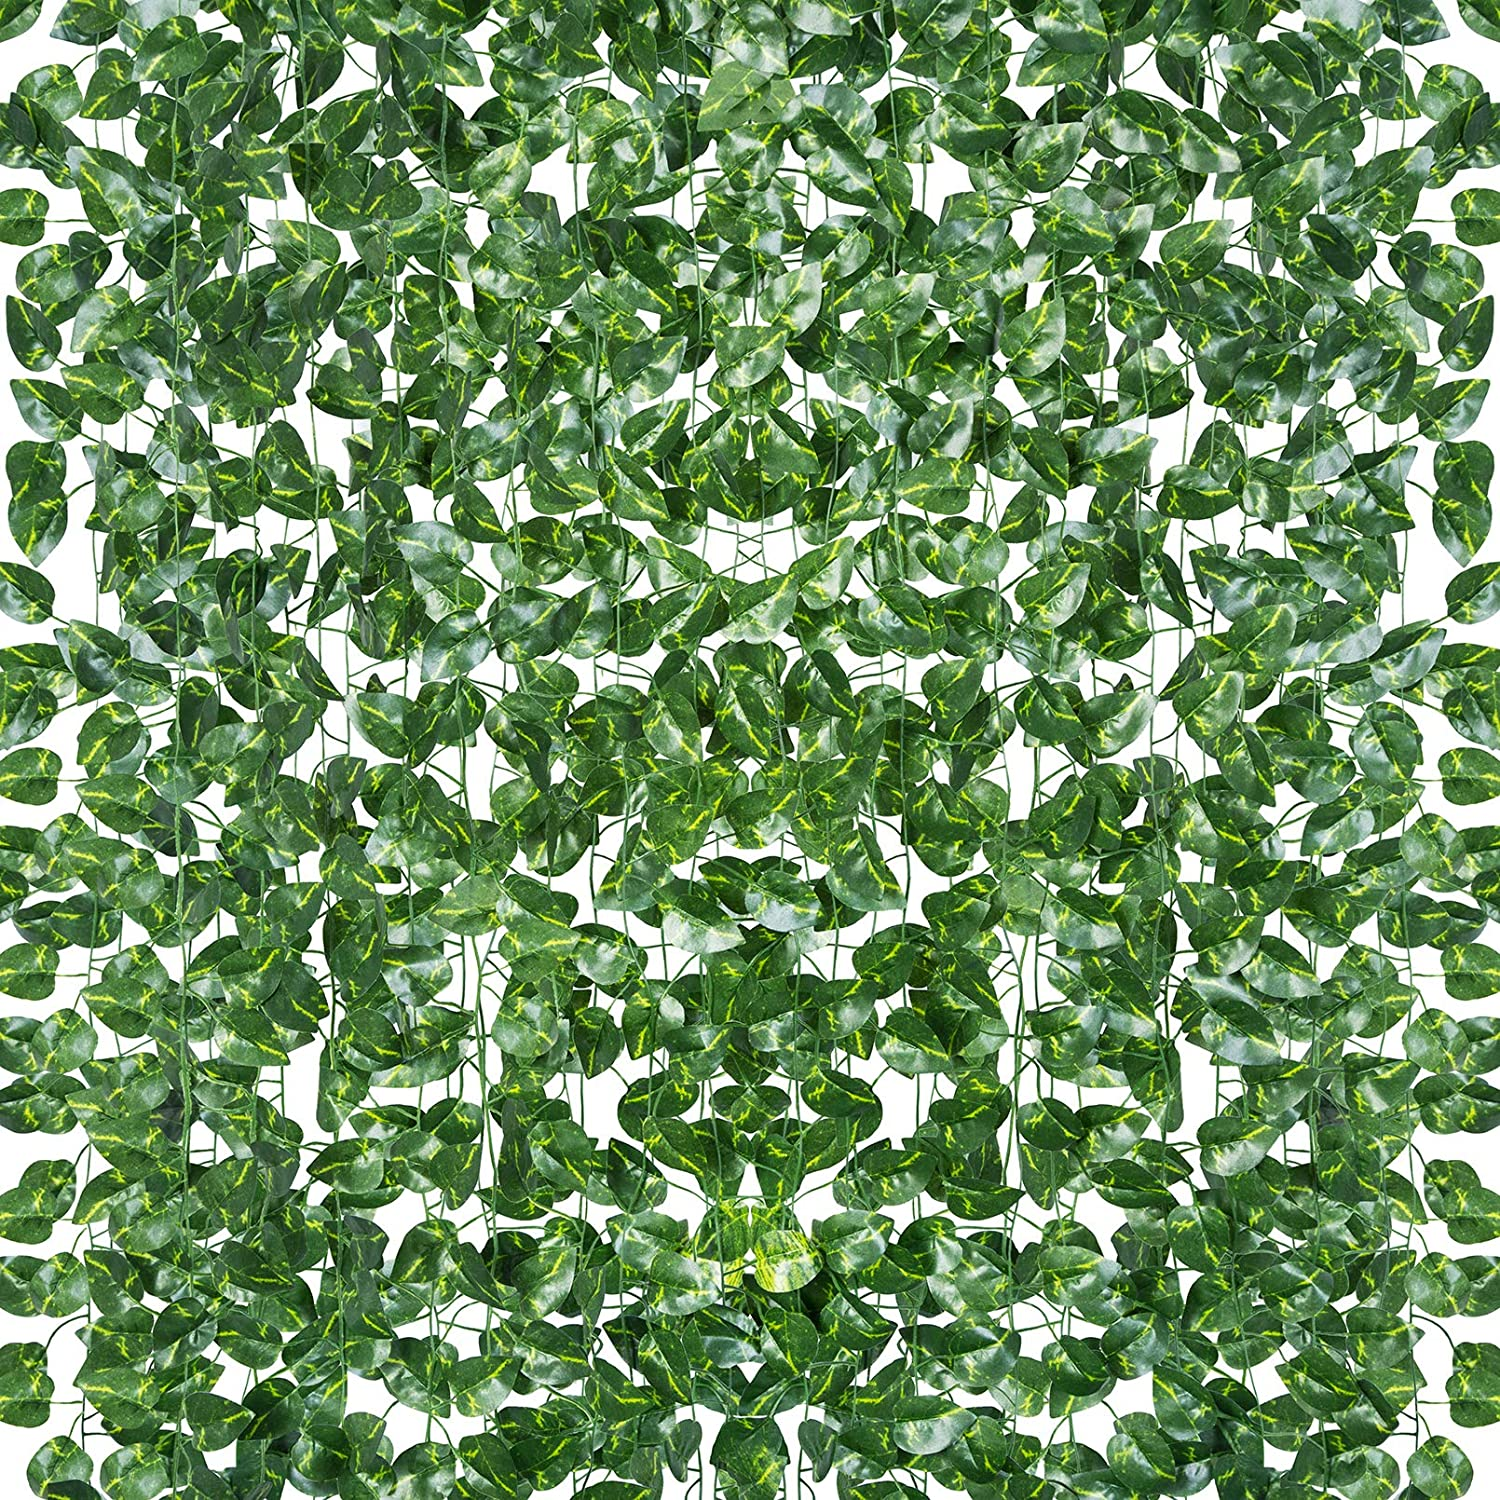 18 Pack 124 Feet Aesthetic Room Decor Vines Fake Leaves Greenery Garland Artificial Hanging Plants for Bedroom Garden Kitchen Office Home Wedding Party Wall Decor